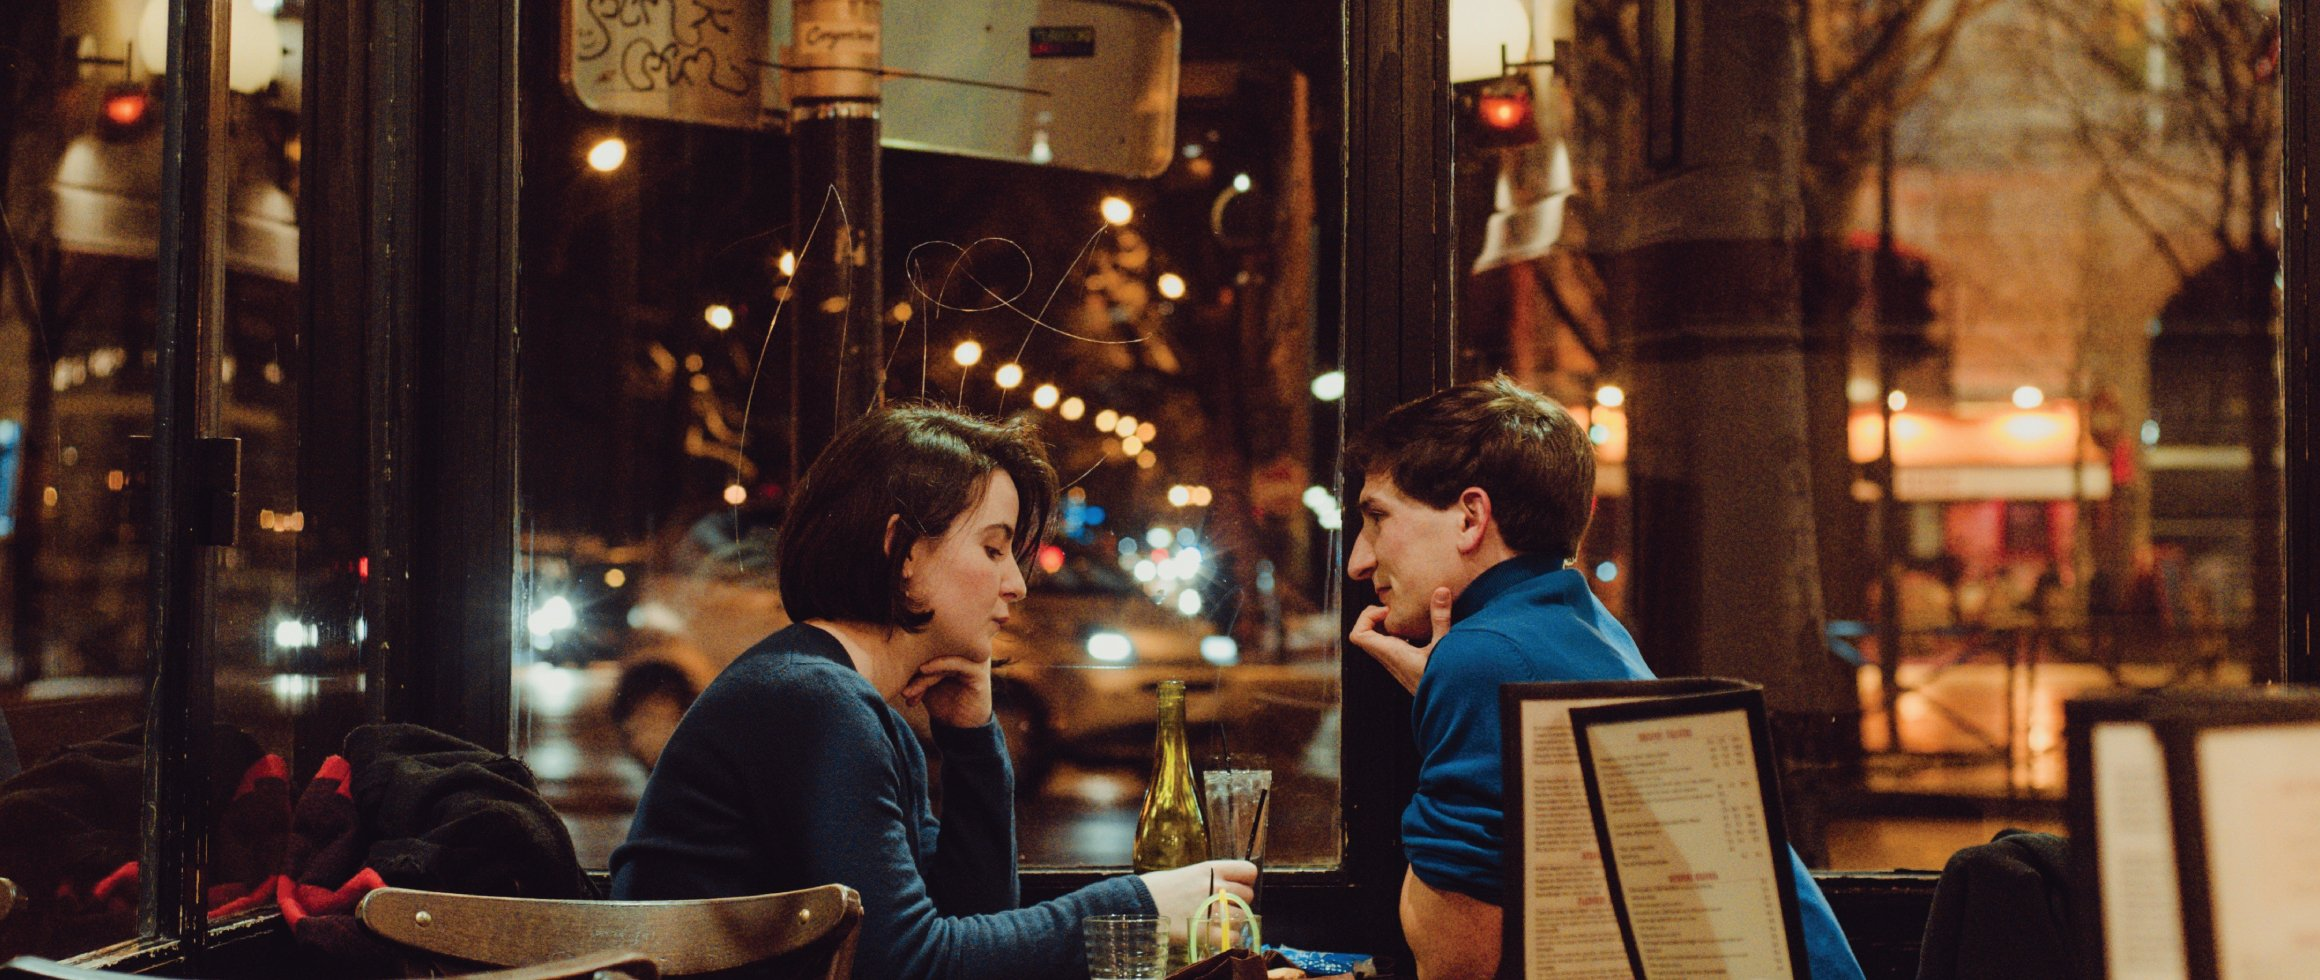 16 first date ideas for breaking the ice and ignite the fun